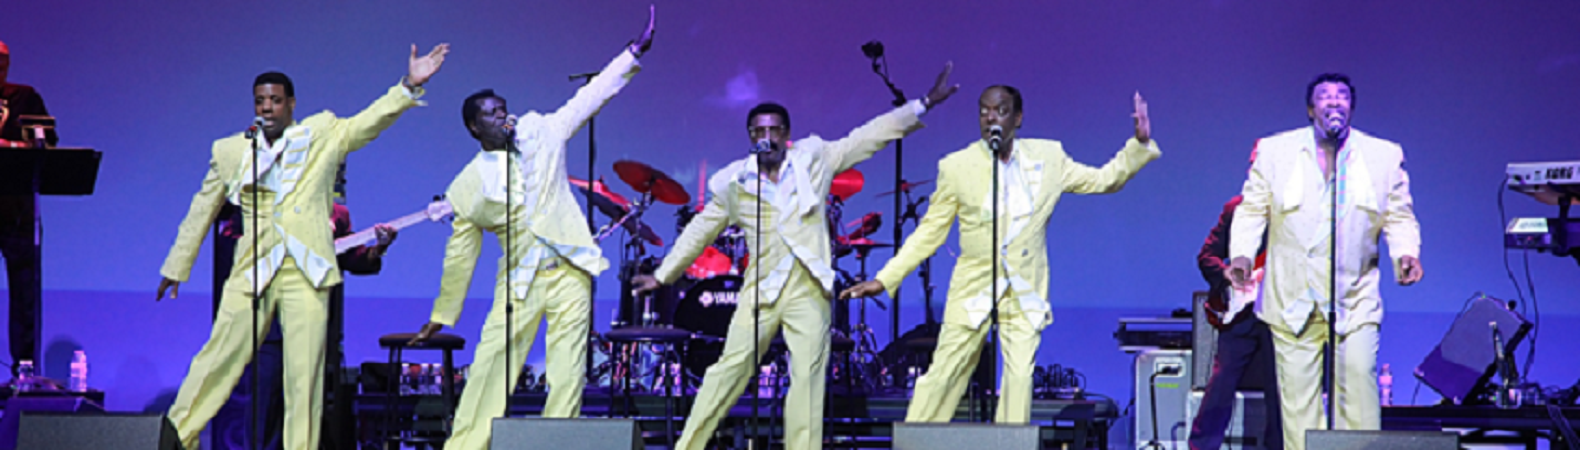 The Temptations Review feat. Dennis Edwards